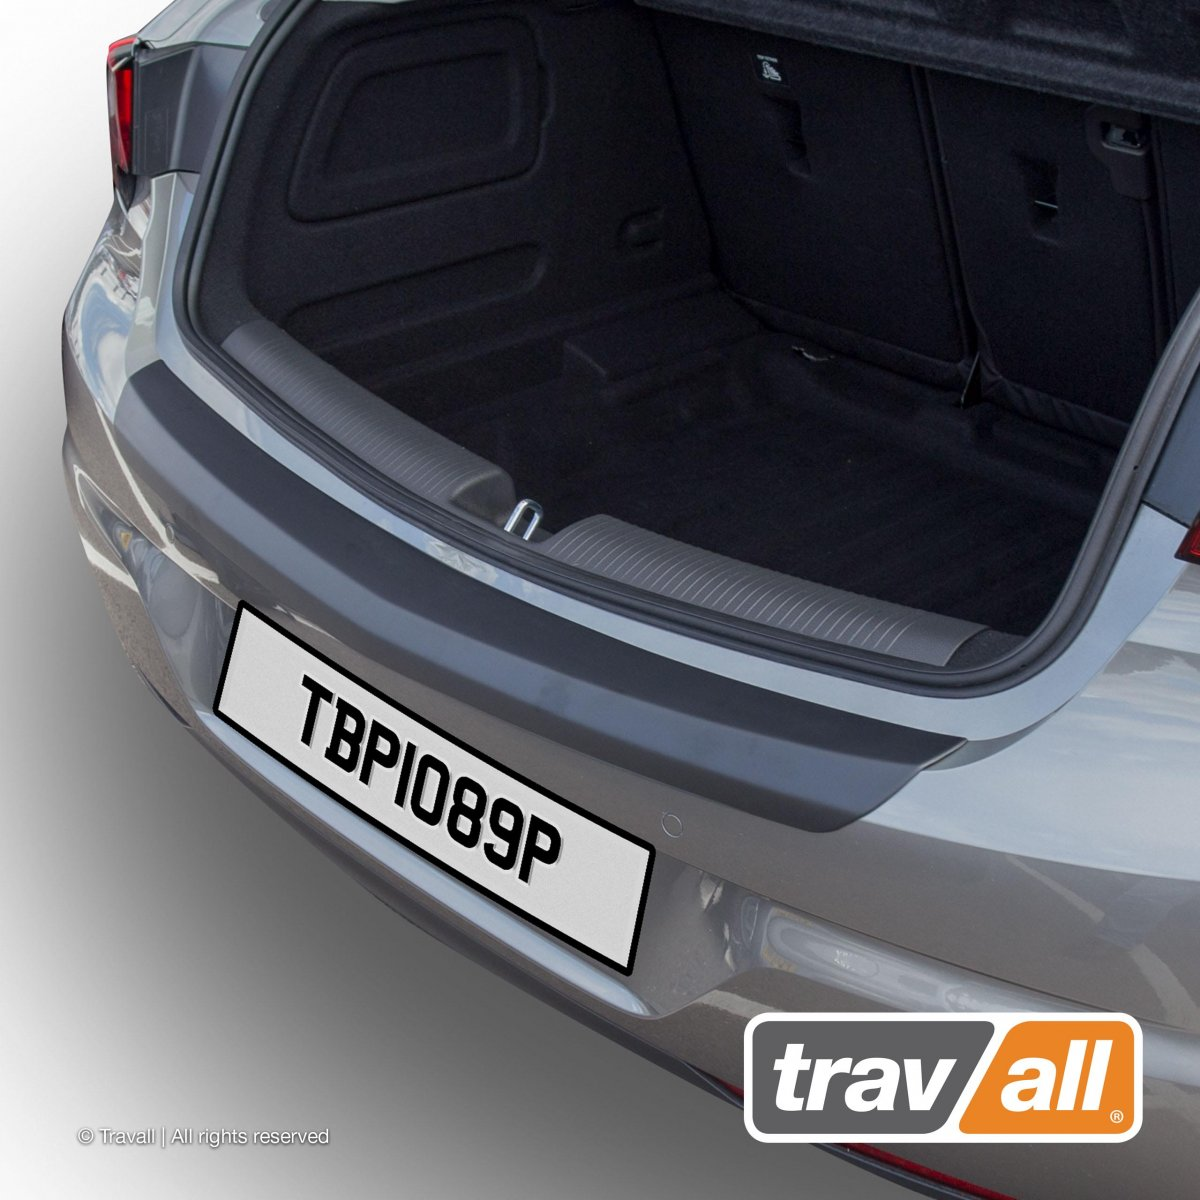 Travall® PROTECTOR-parachoques liso para Opel/Vauxhall Astra Hatchback (2015 >)